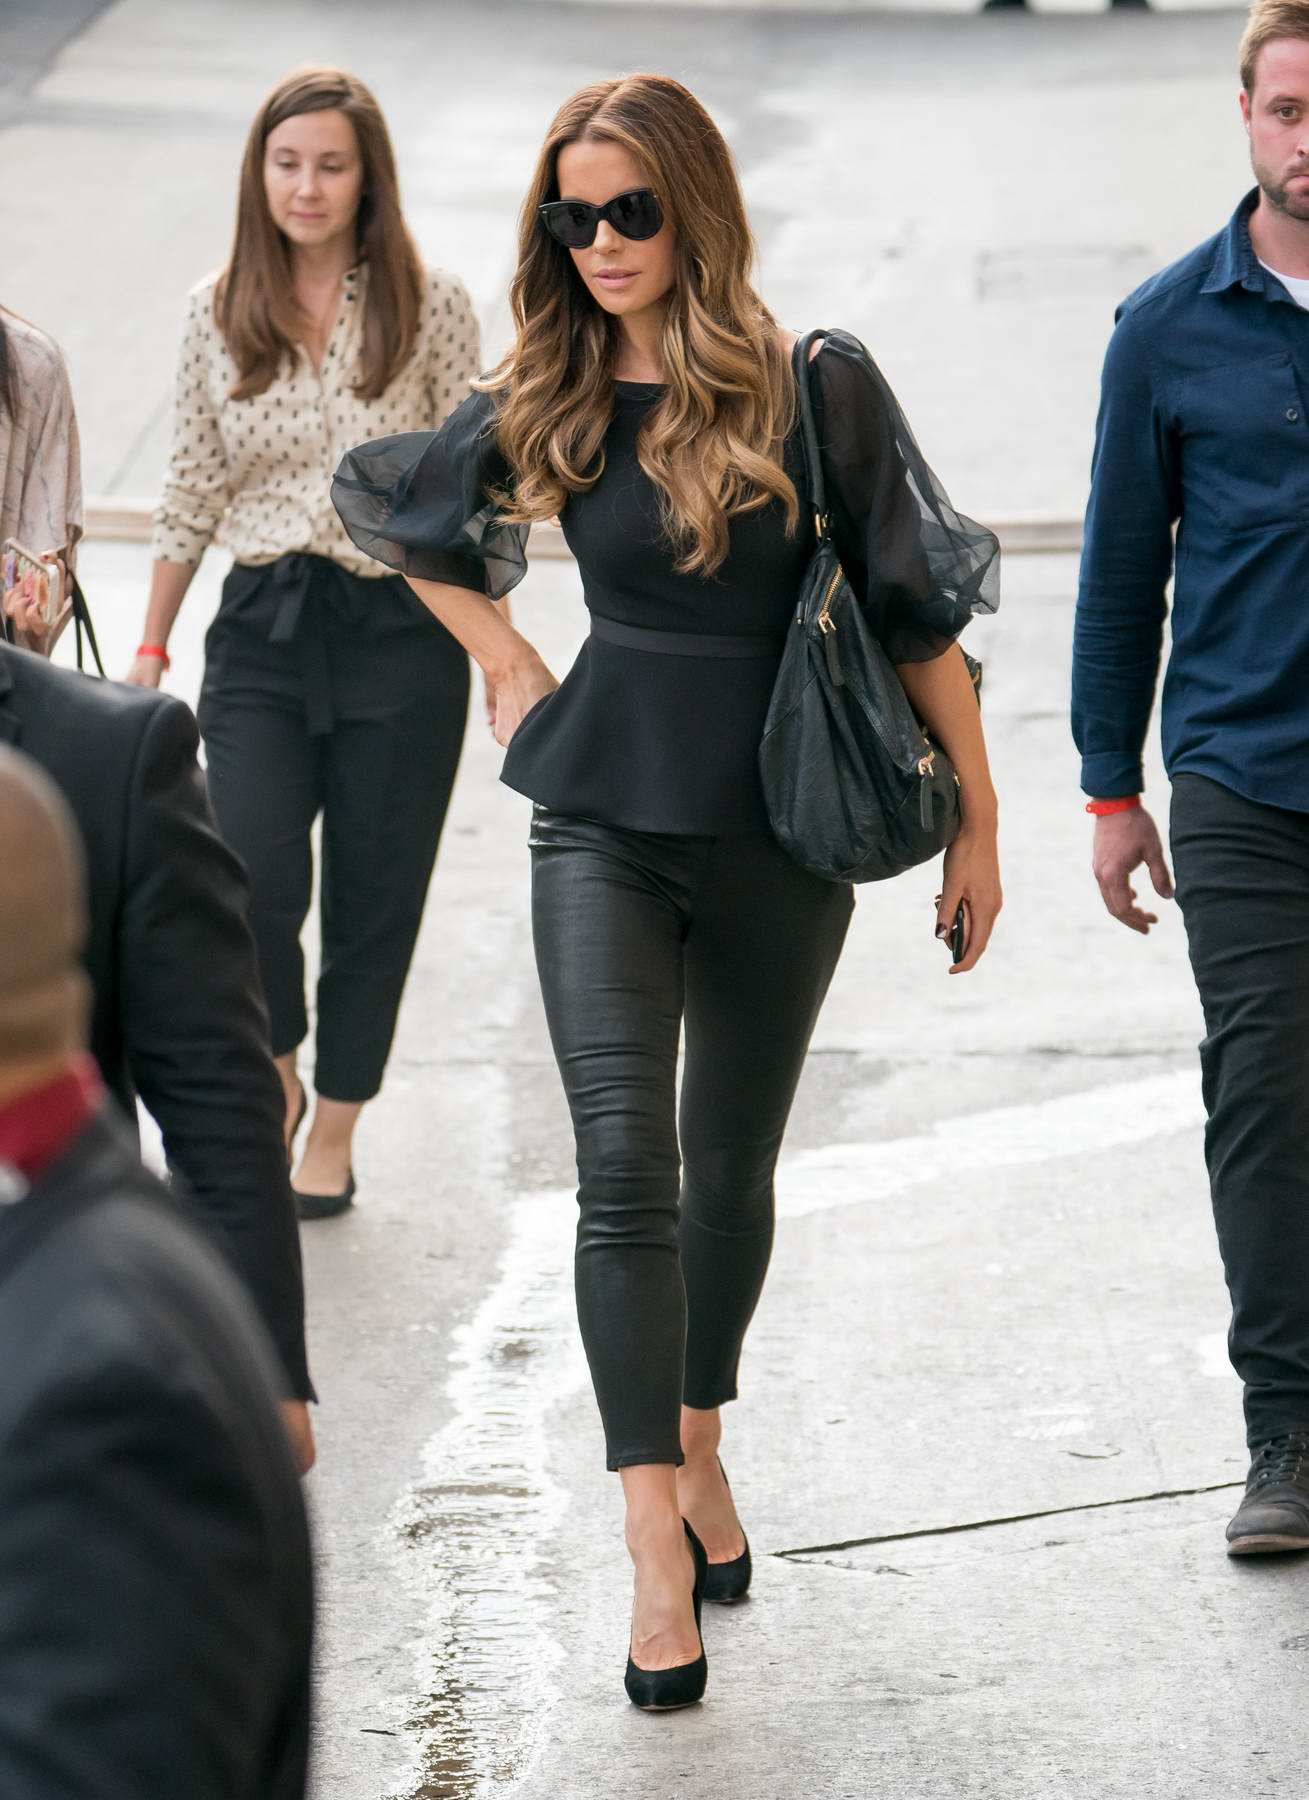 Kate Beckinsale arrives at the Jimmy Kimmel Live in Hollywood, California